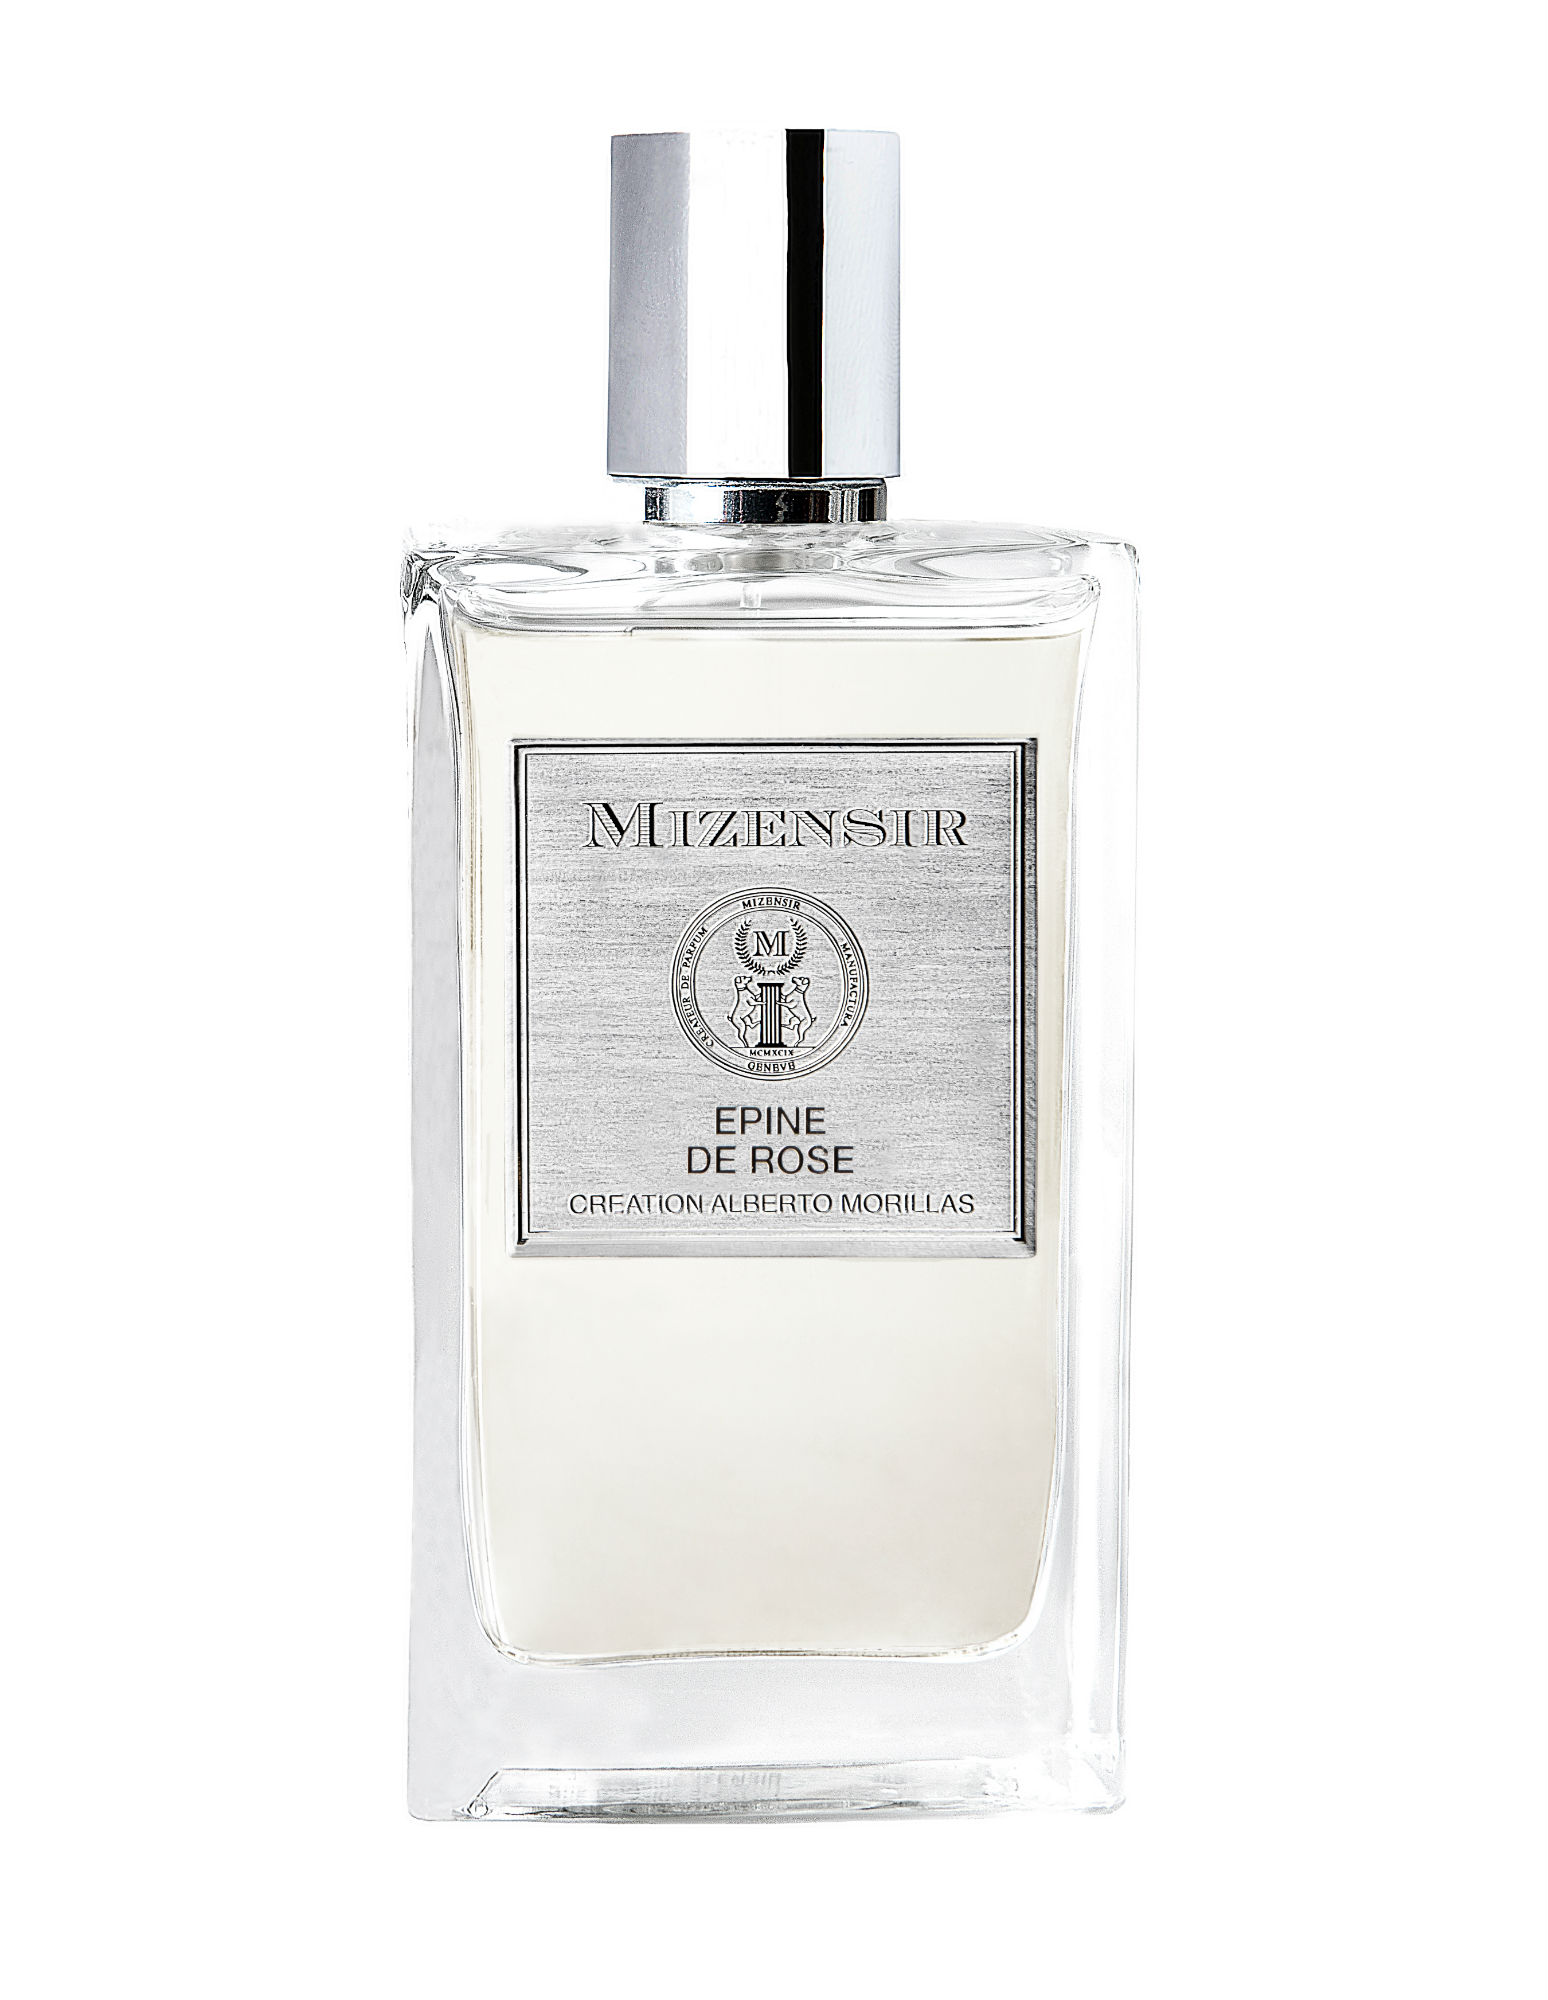 Four new Mizensir fragrances have recently launched